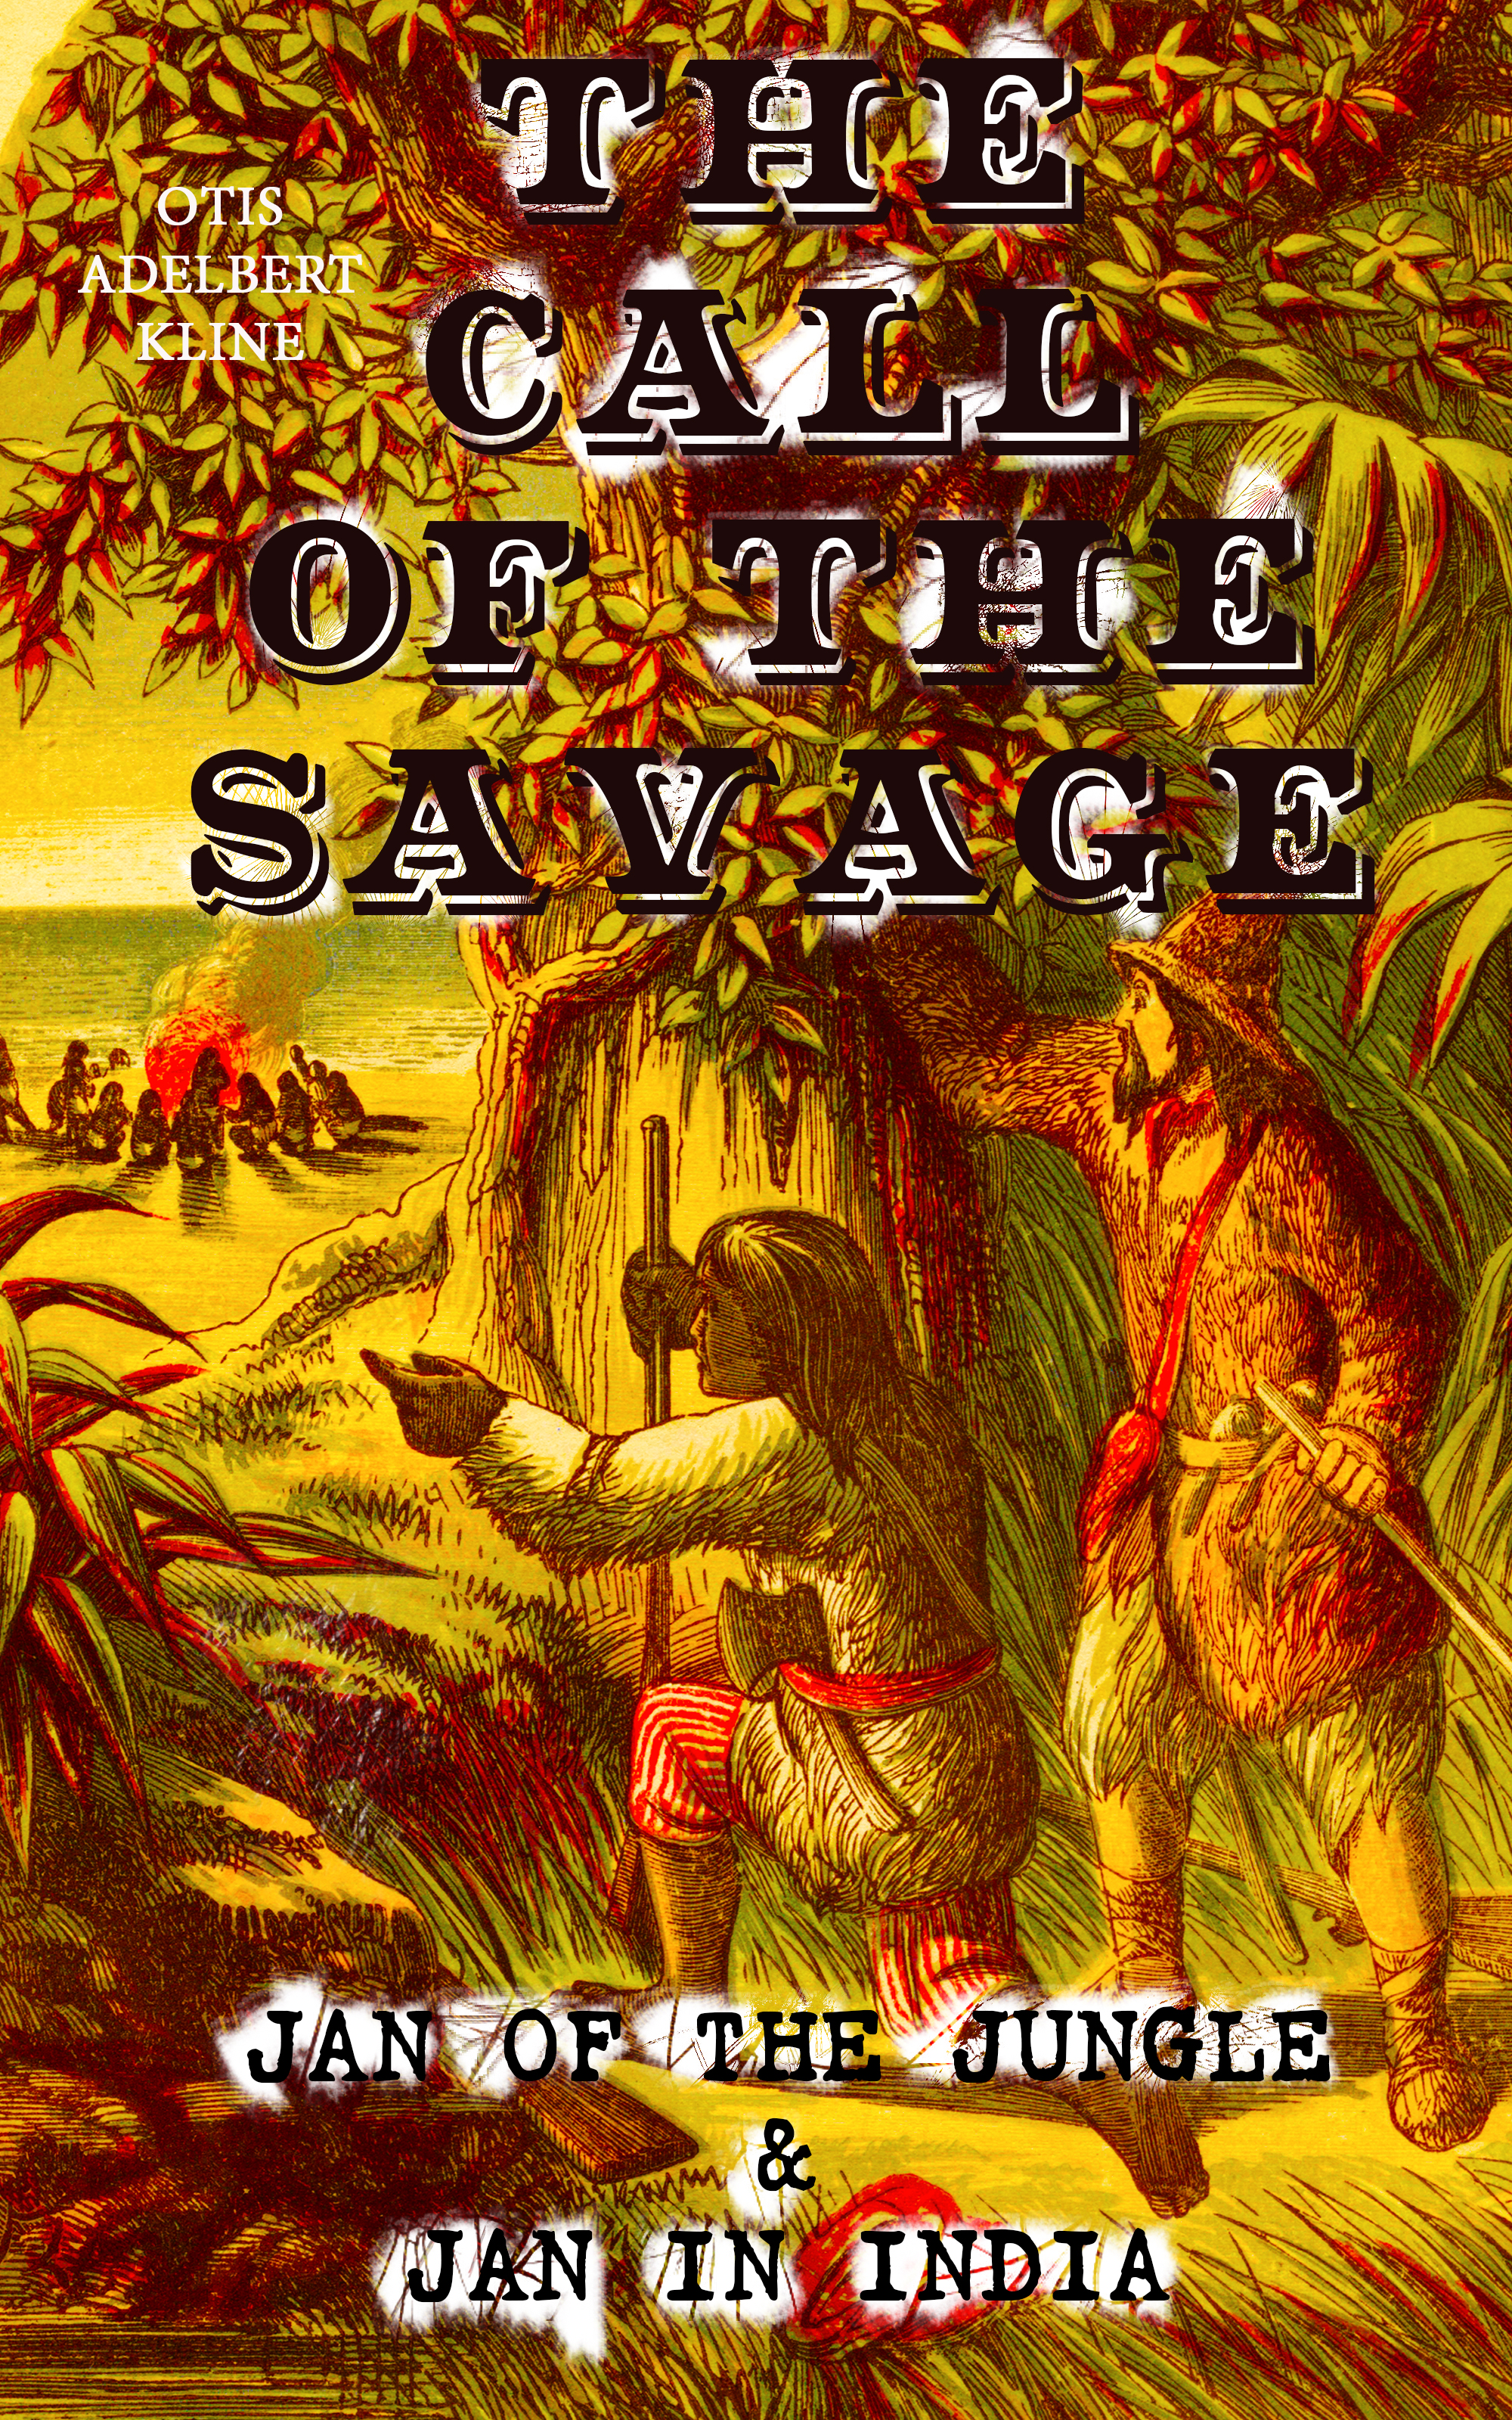 Otis Adelbert Kline THE CALL OF THE SAVAGE – Jan of the Jungle & Jan in India jan hambright the high country rancher